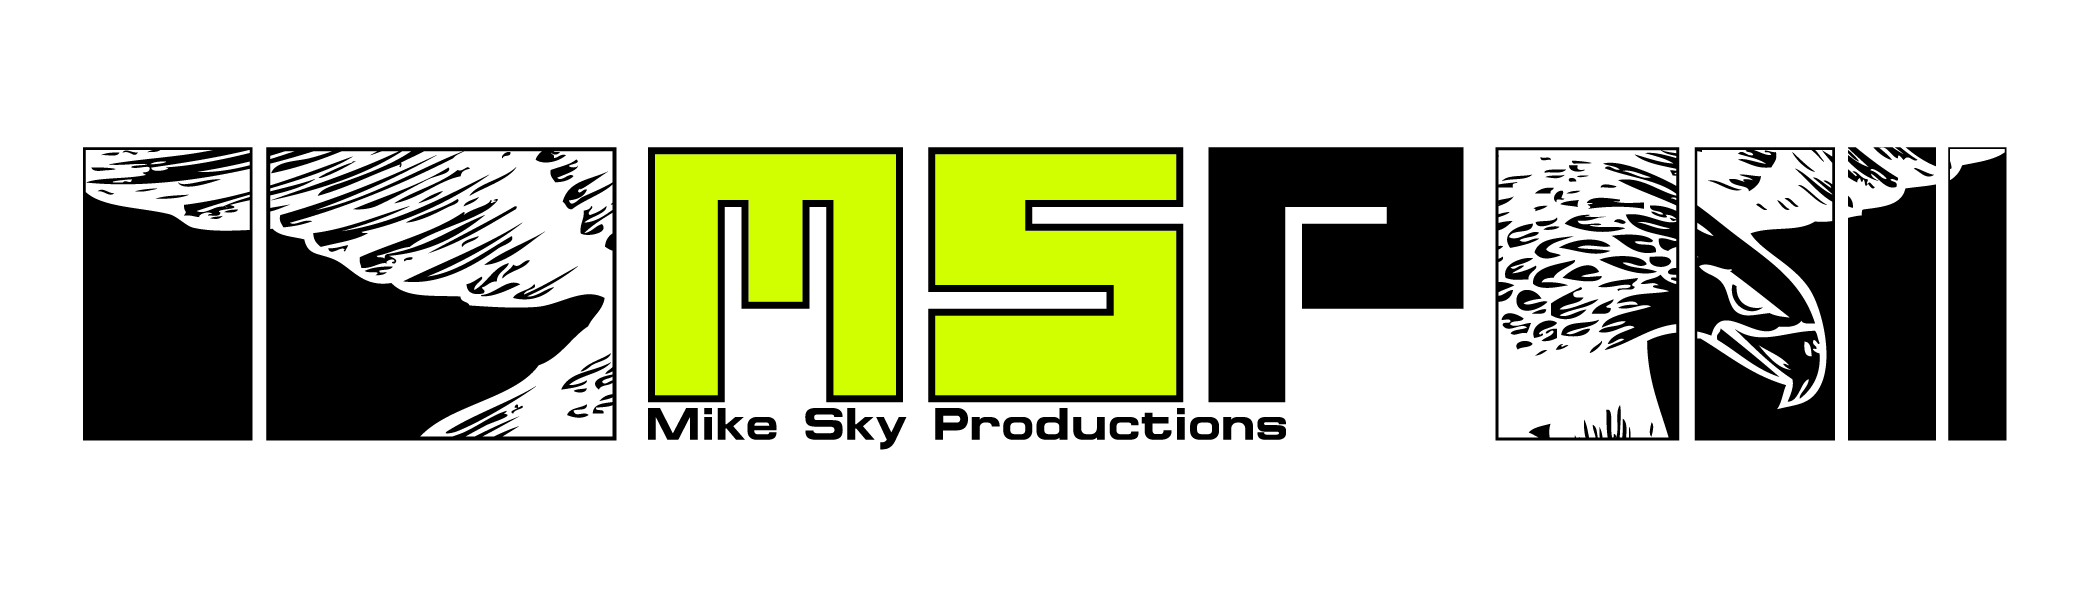 Mike Sky Productions